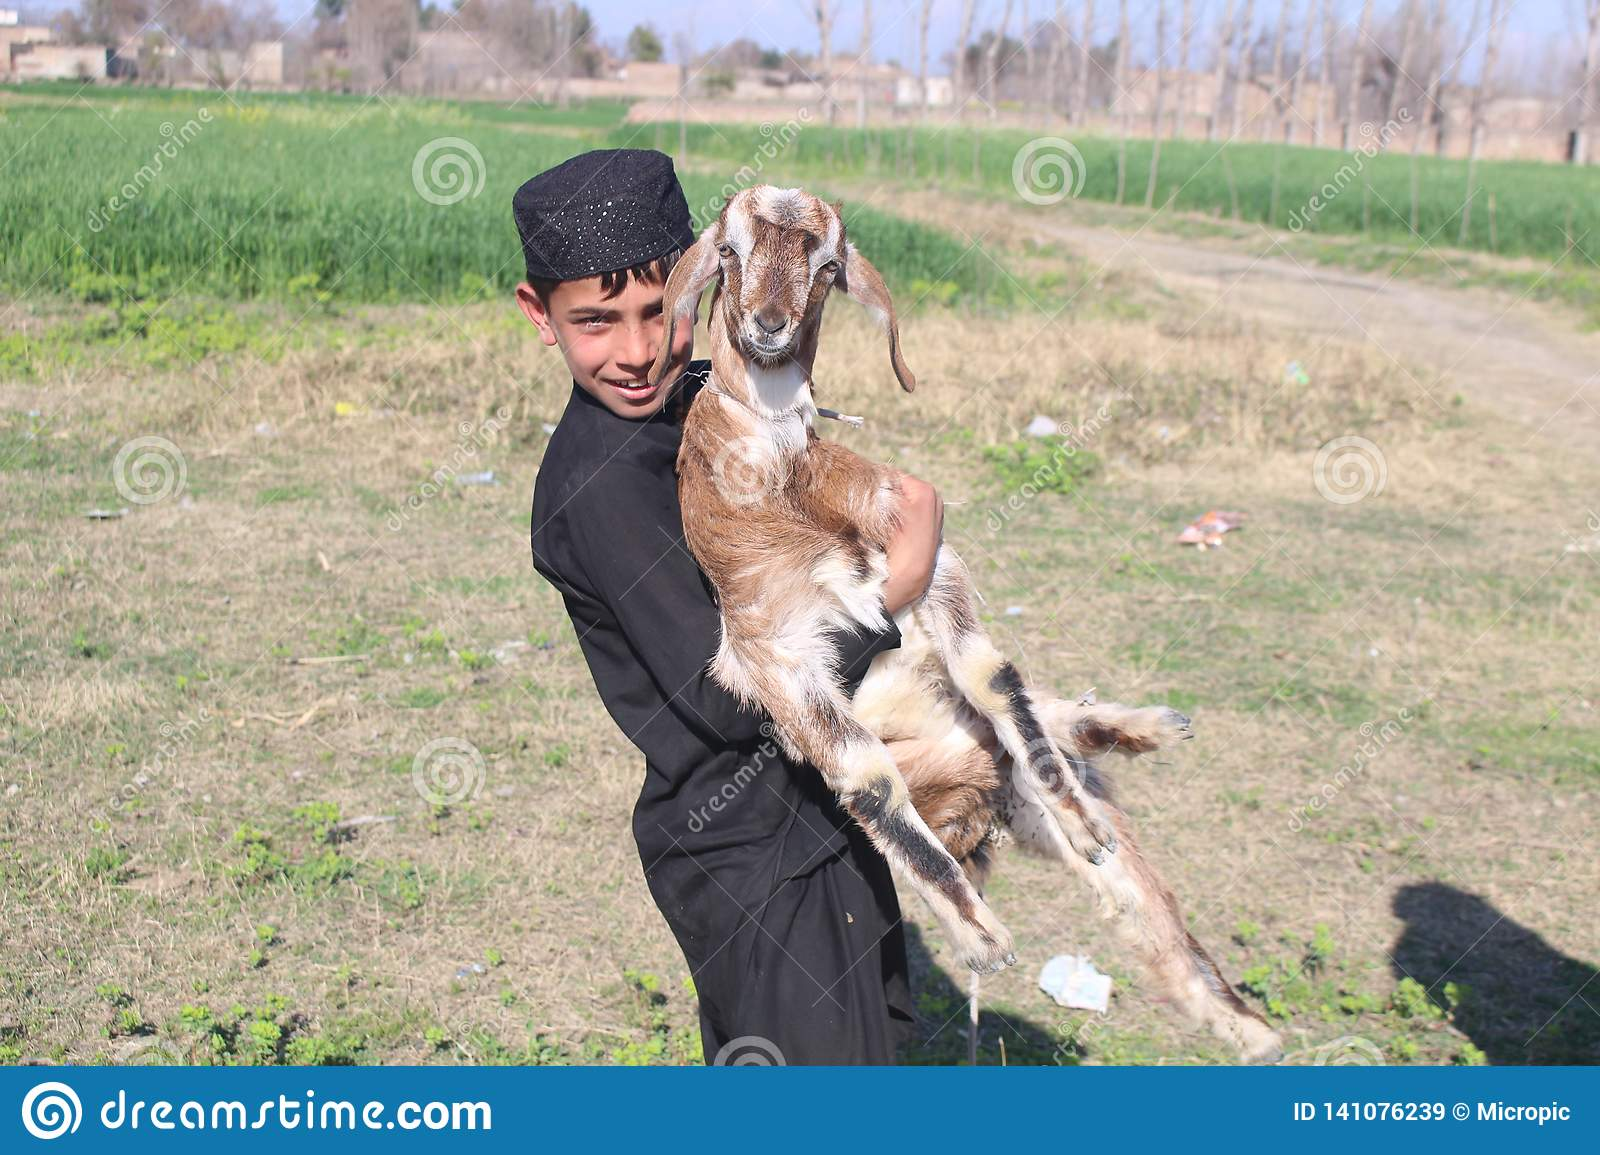 Afghanistan Pakistan Pashtun Pathan Boy With Goat Editorial